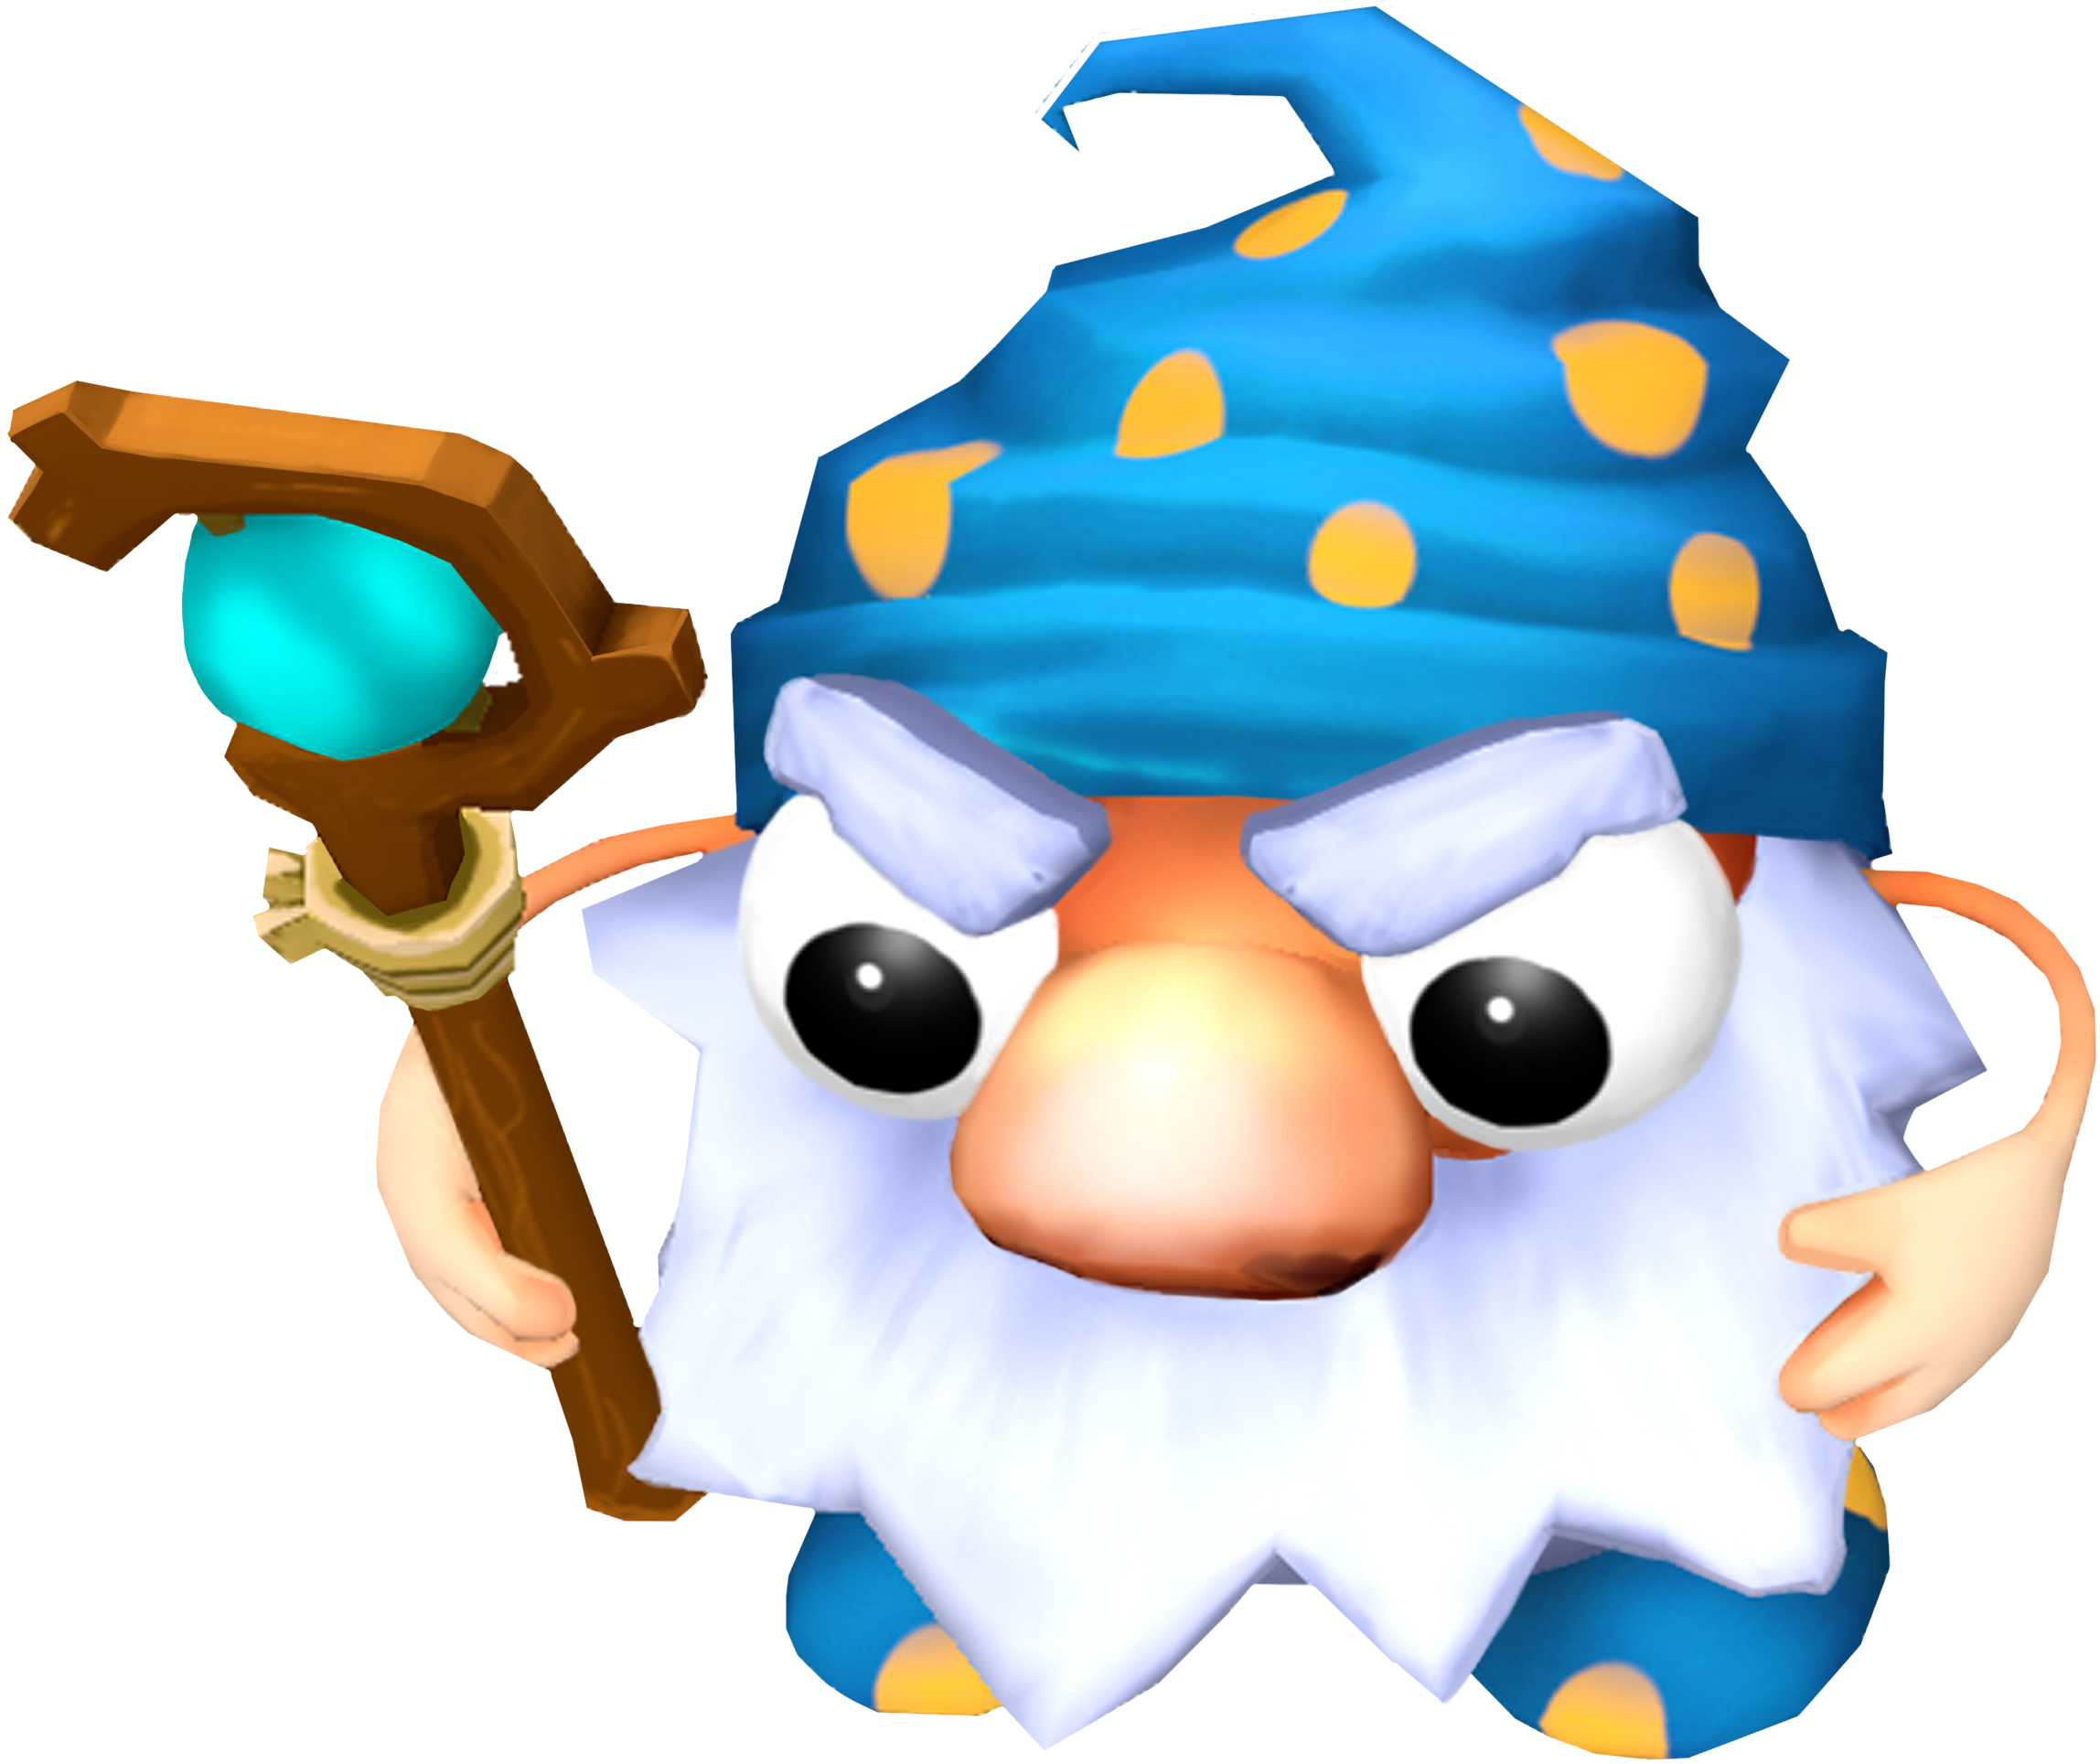 Gnome_Mage_AnyEffects.jpg